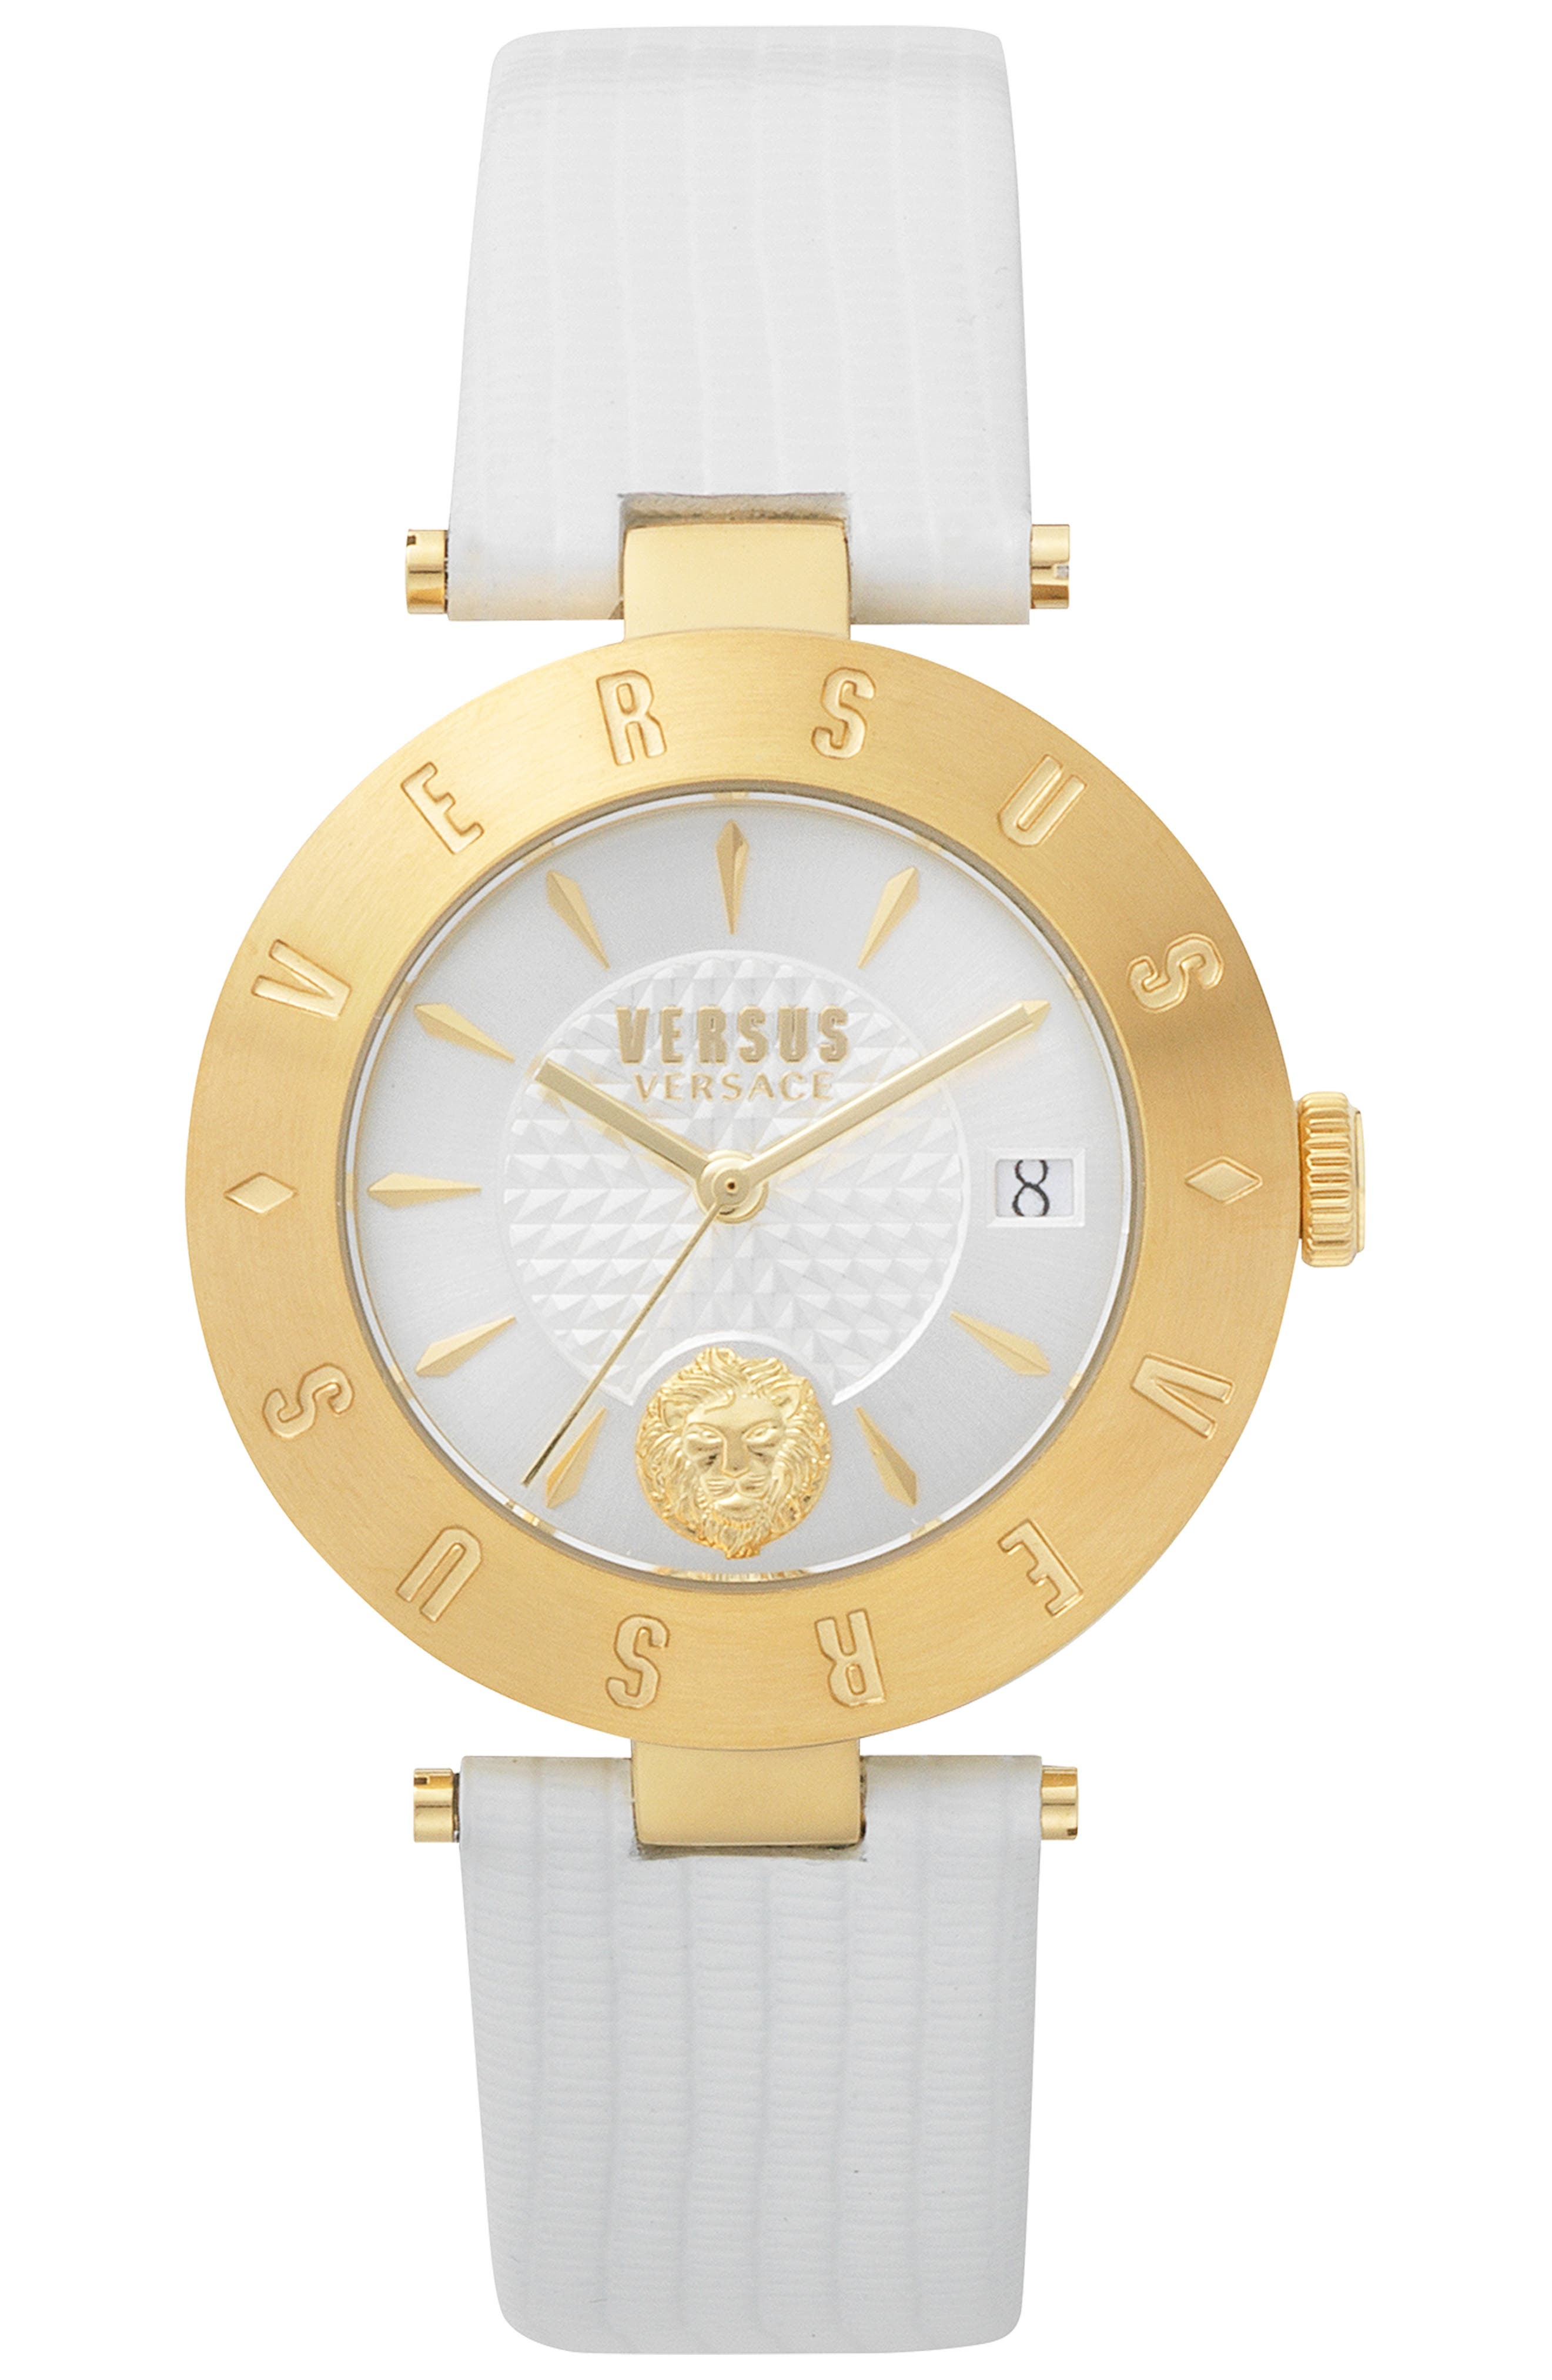 VERSUS VERSACE, Logo Leather Strap Watch, 34mm, Main thumbnail 1, color, WHITE/ GOLD